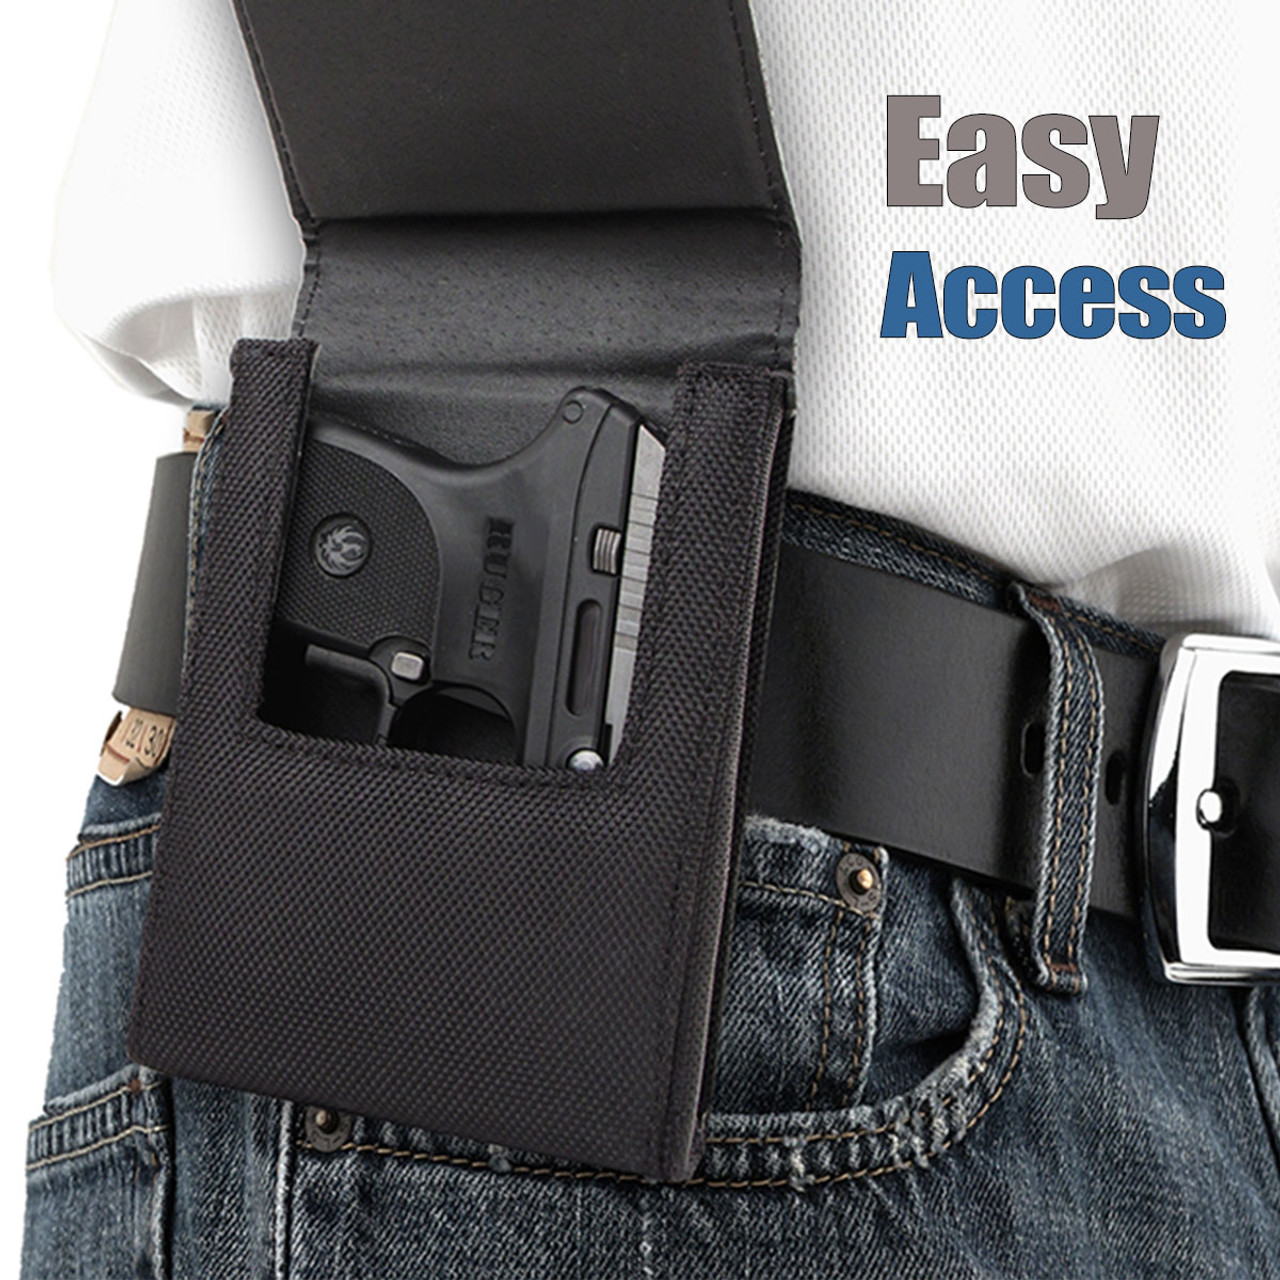 Sig Sauer P230 Sneaky Pete Holster (Belt Clip)